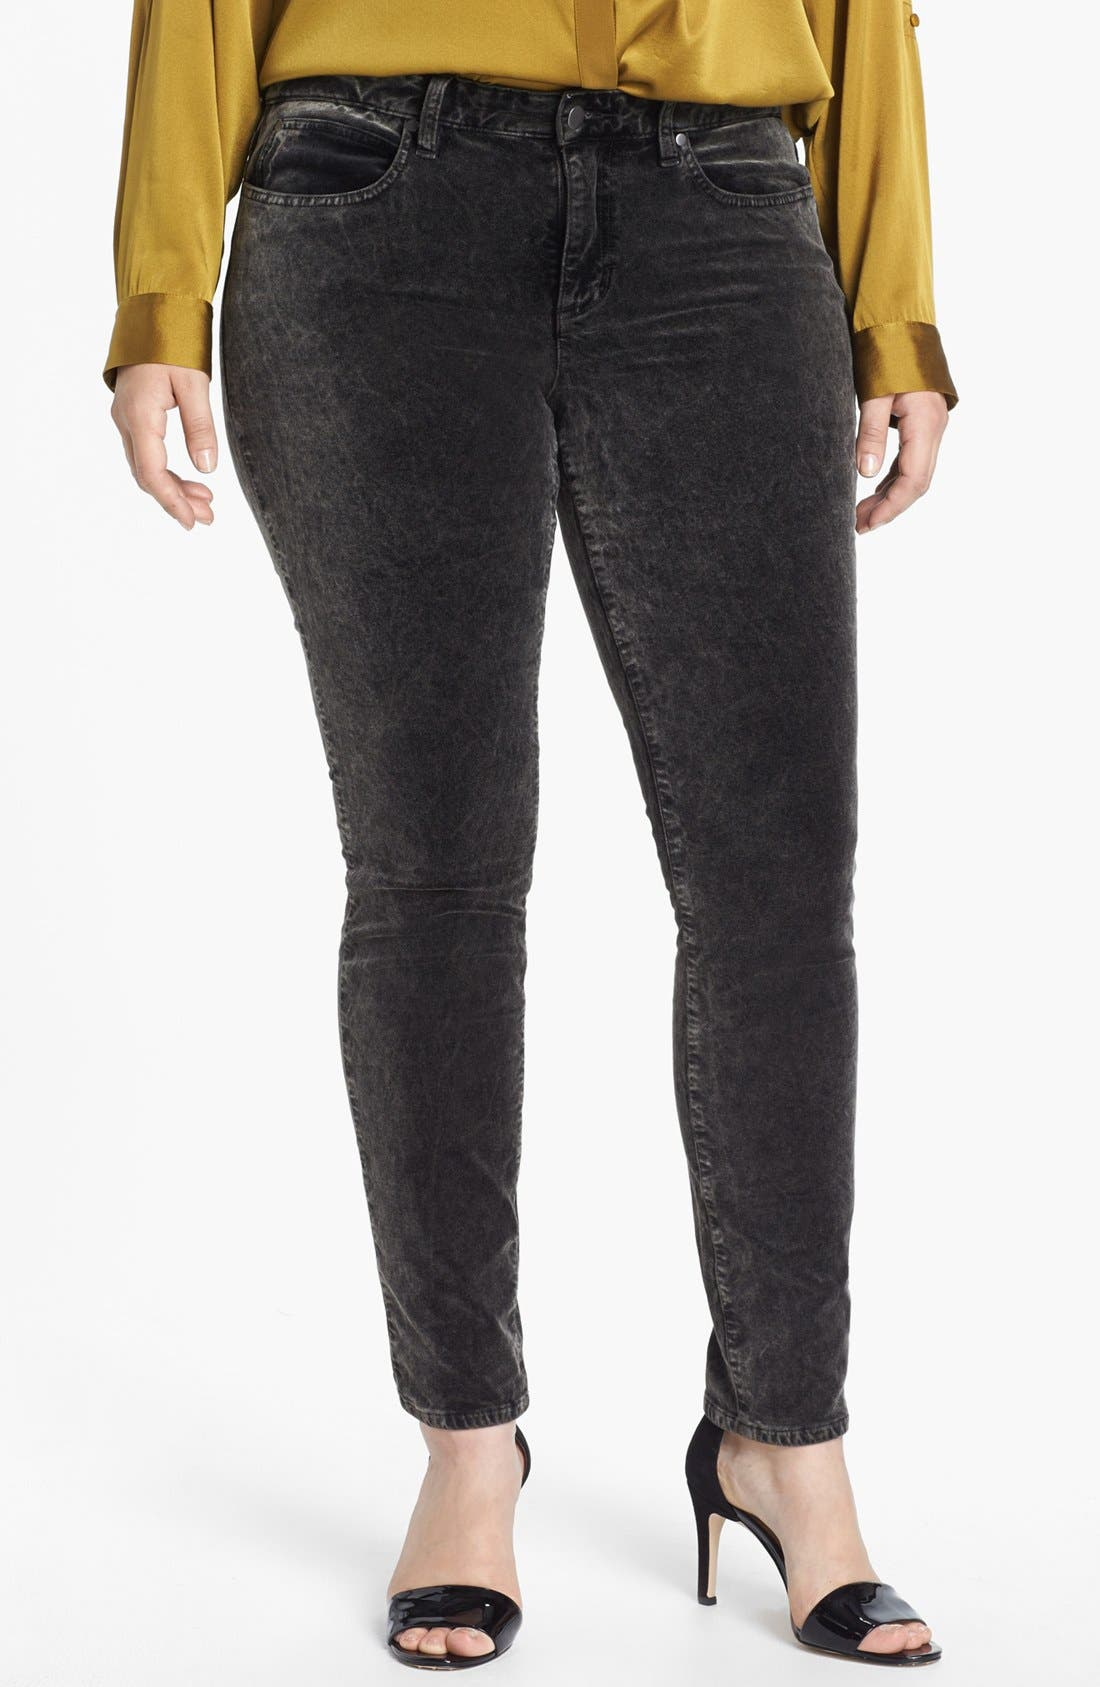 Alternate Image 1 Selected - Eileen Fisher Velveteen Stretch Jeans (Plus Size)